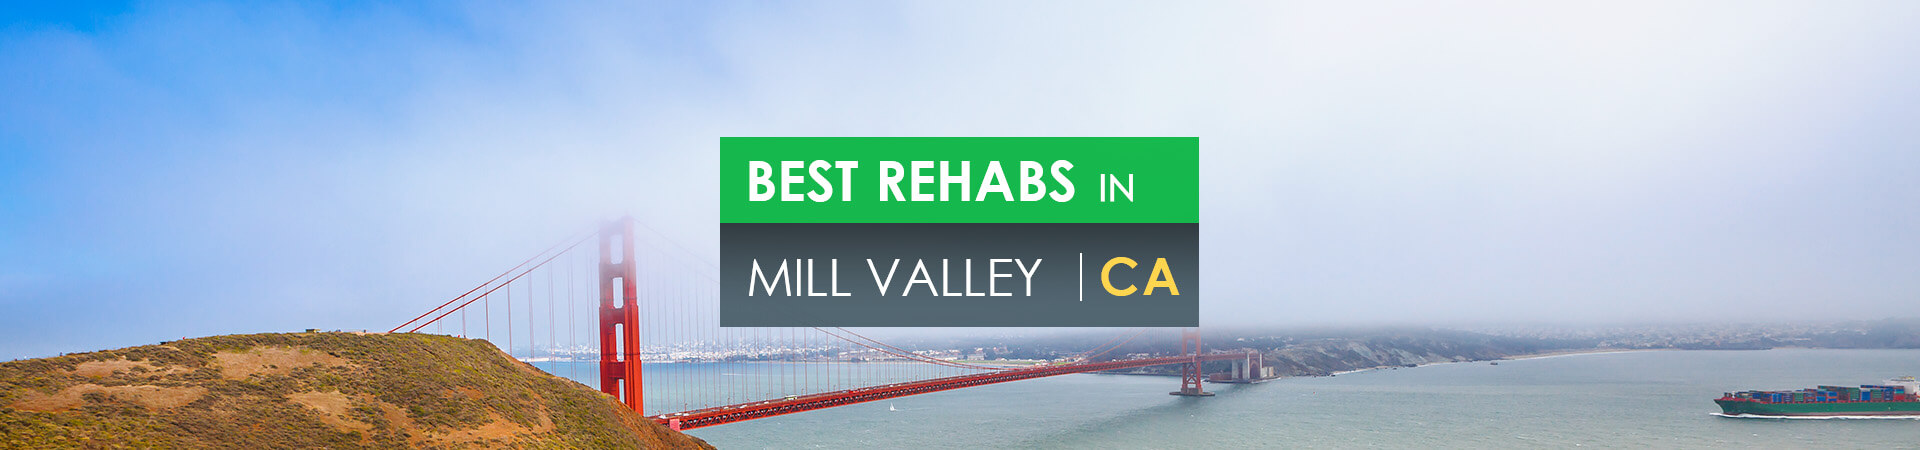 Best rehabs in Mill Valley, CA